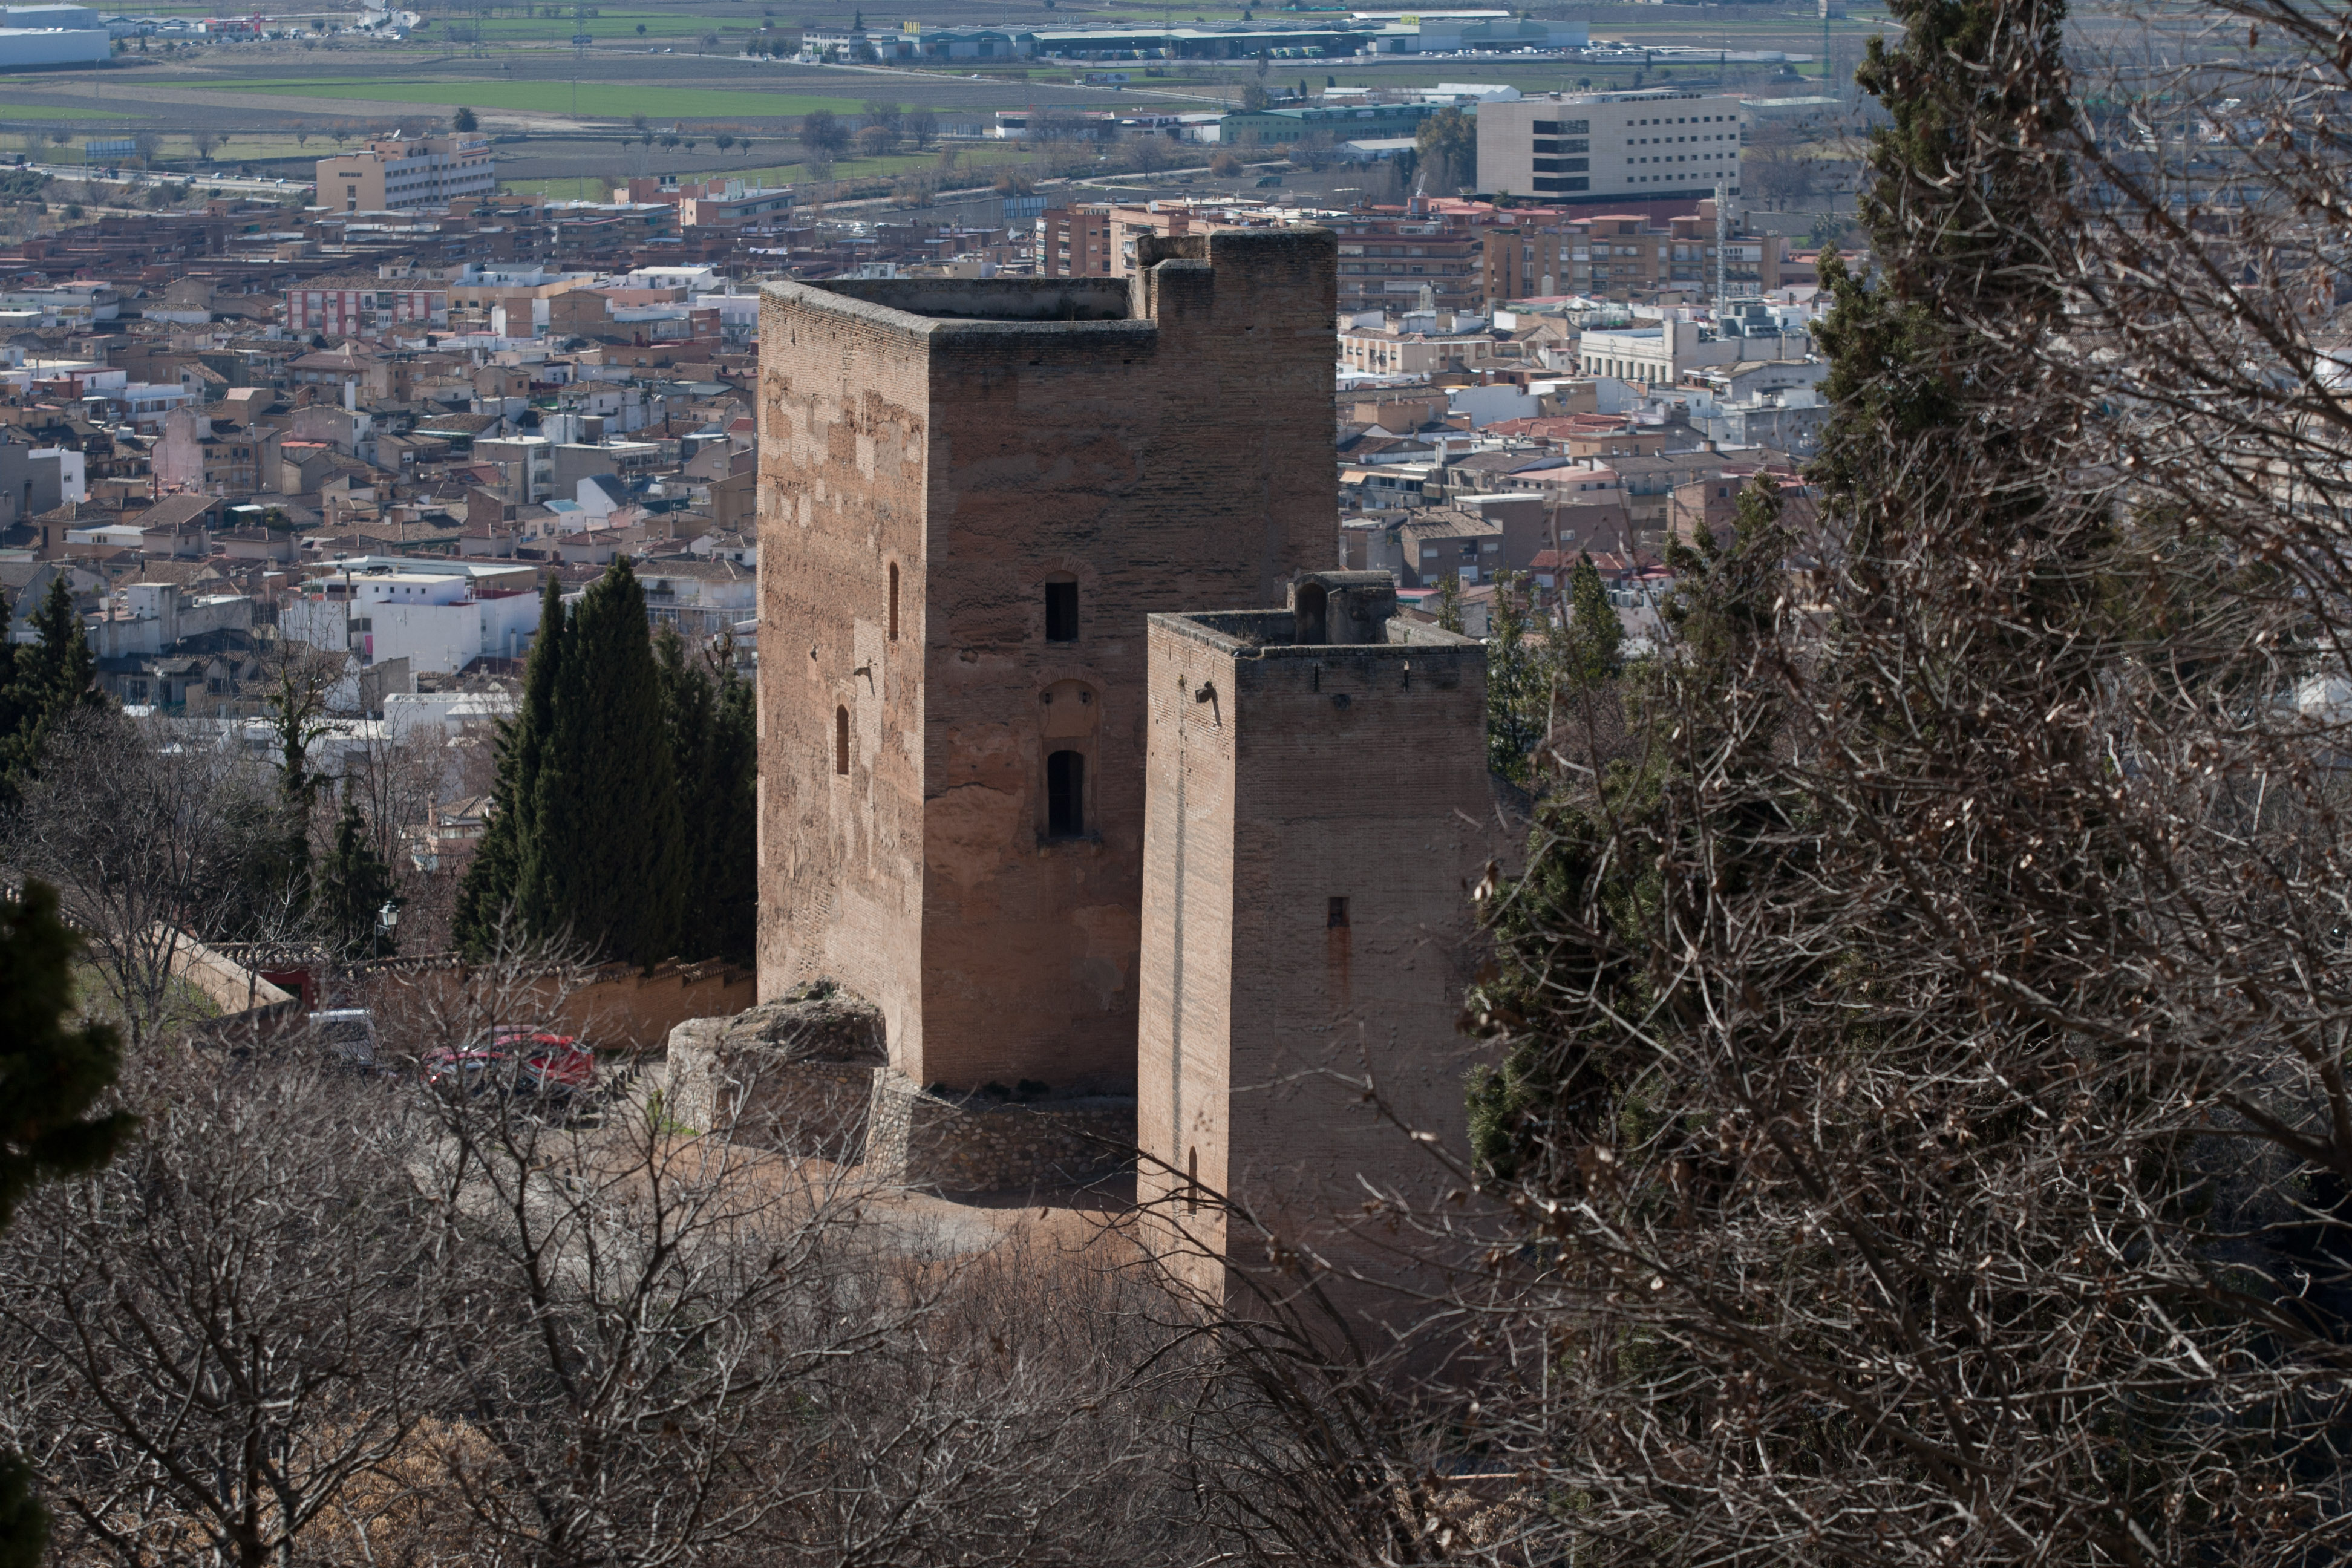 The alhambra opens the tendering process for consolidation and conservation work on the torres bermejas to open them to the public in the future